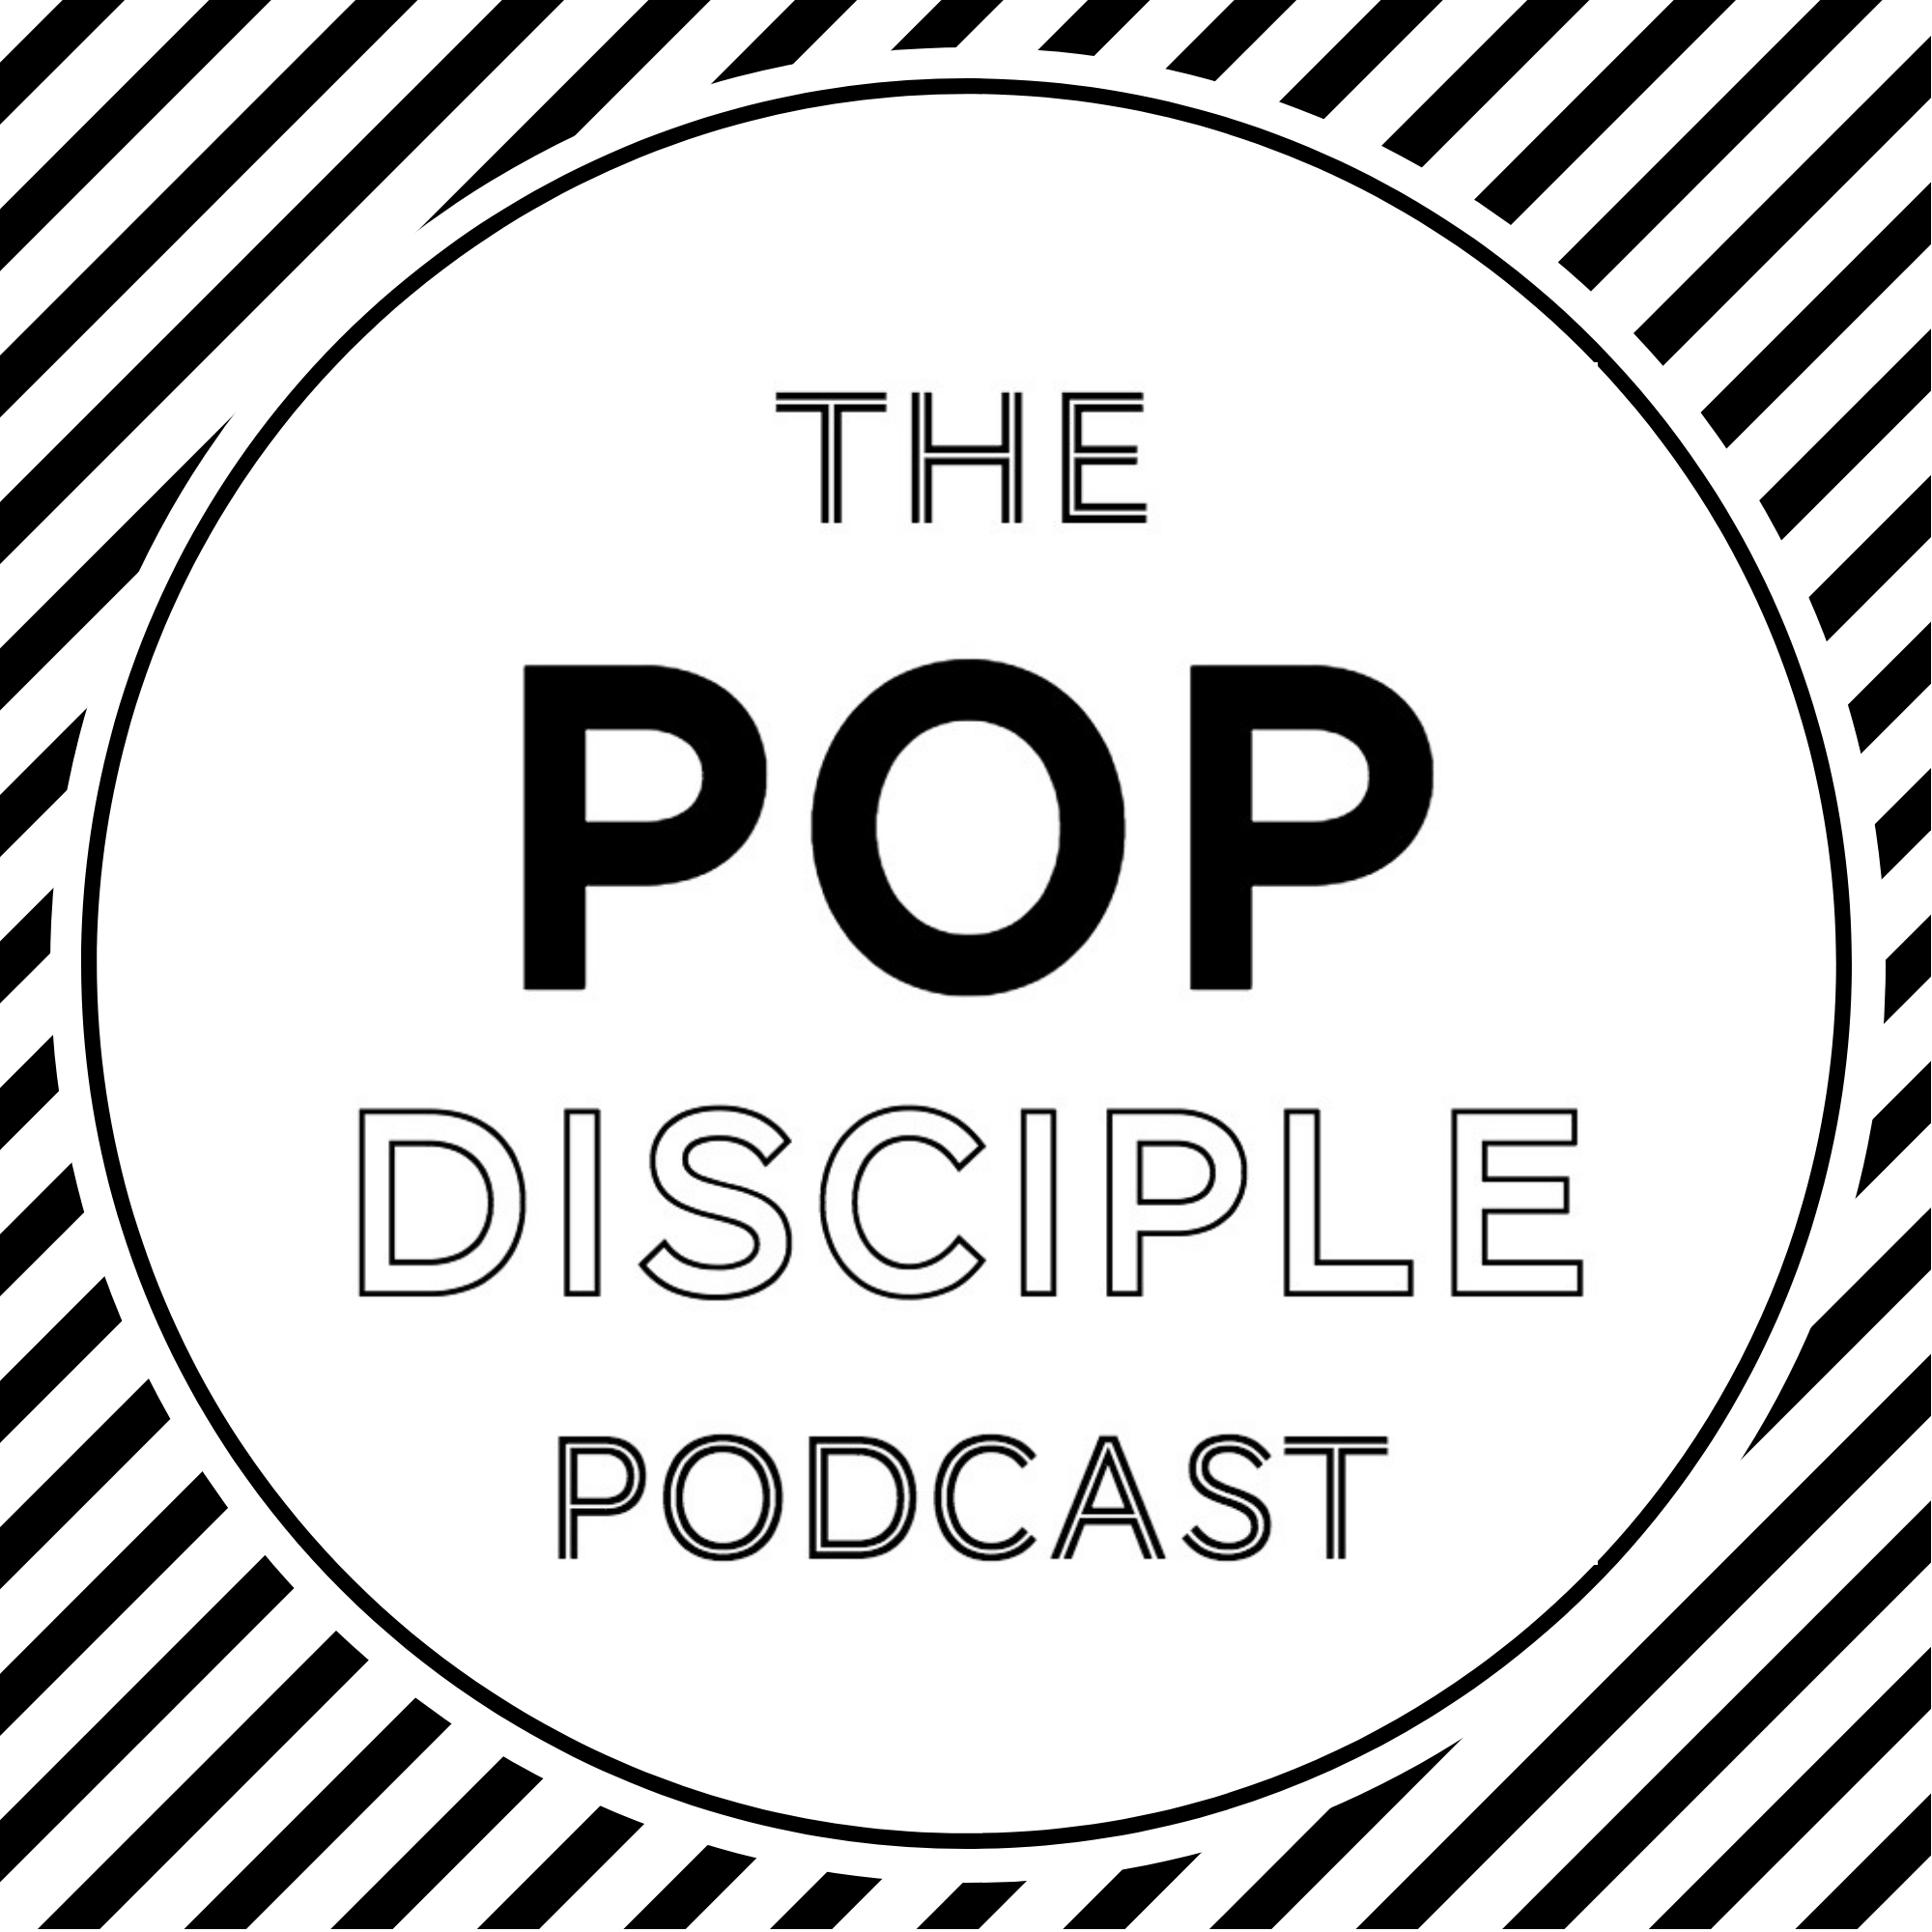 The_Pop_Disciple_Podcast